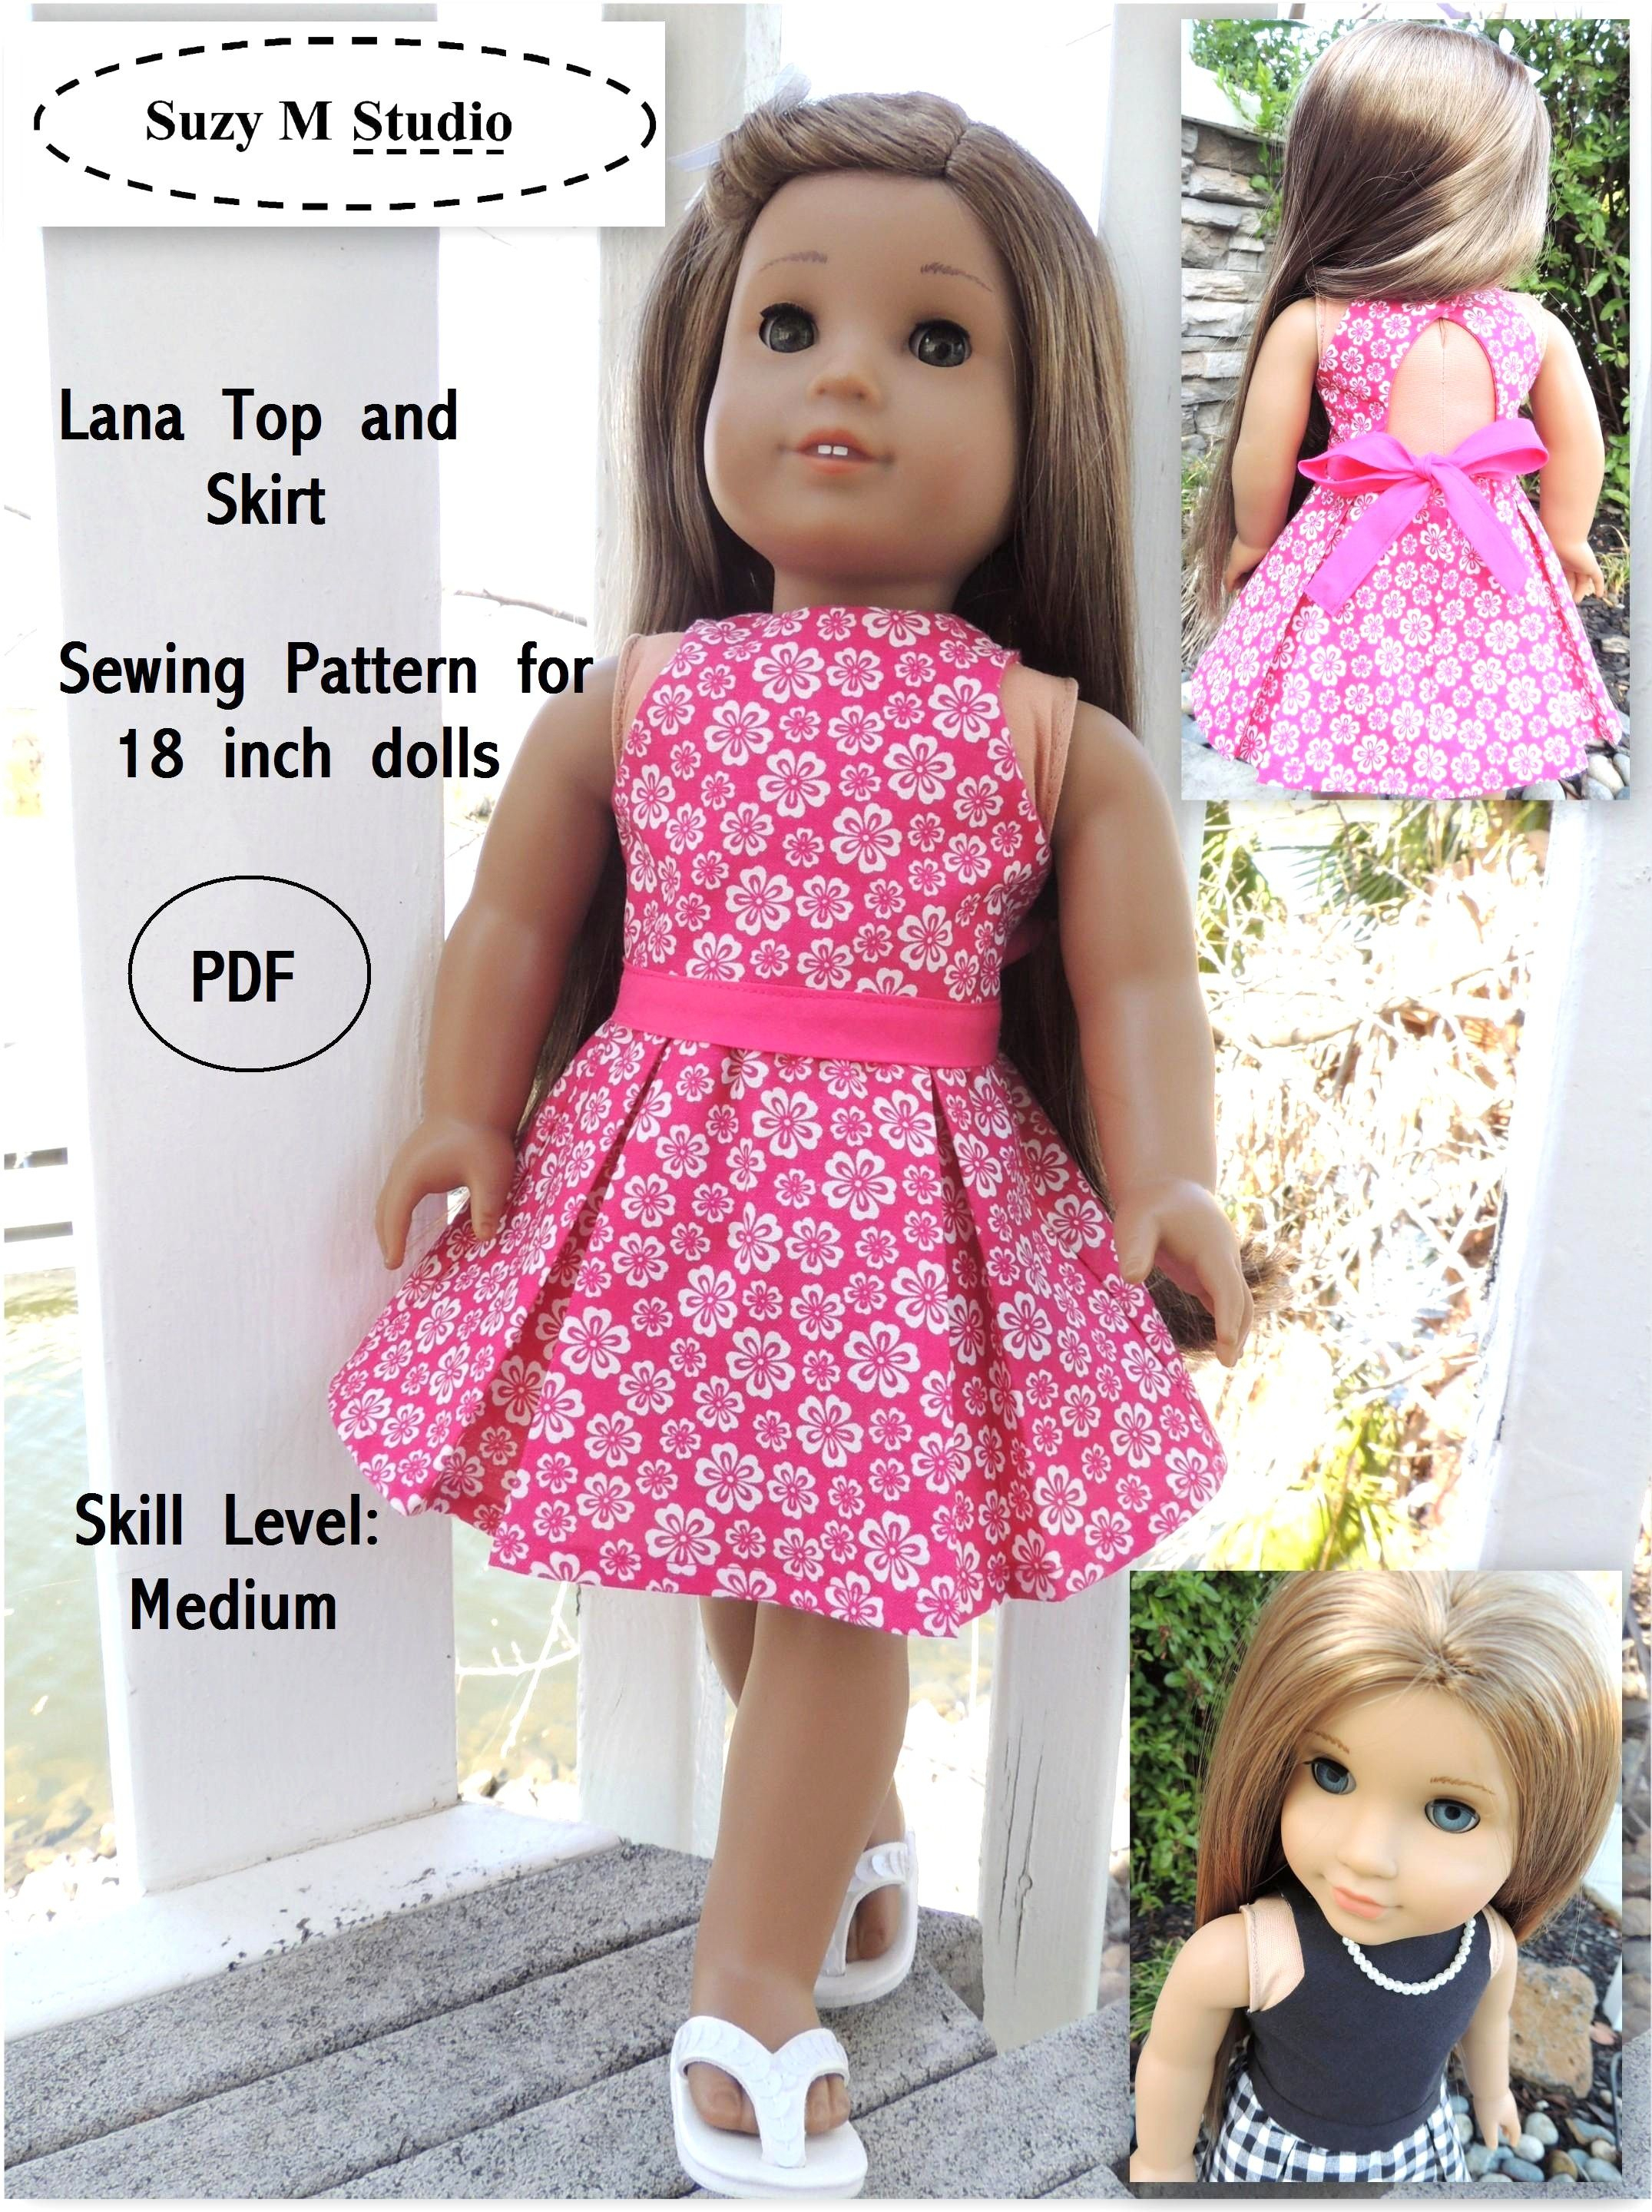 Free Tutorial Pdf | Suzymstudio … | Doll Clothes | Doll … - 18 Inch Doll Clothes Patterns Free Printable